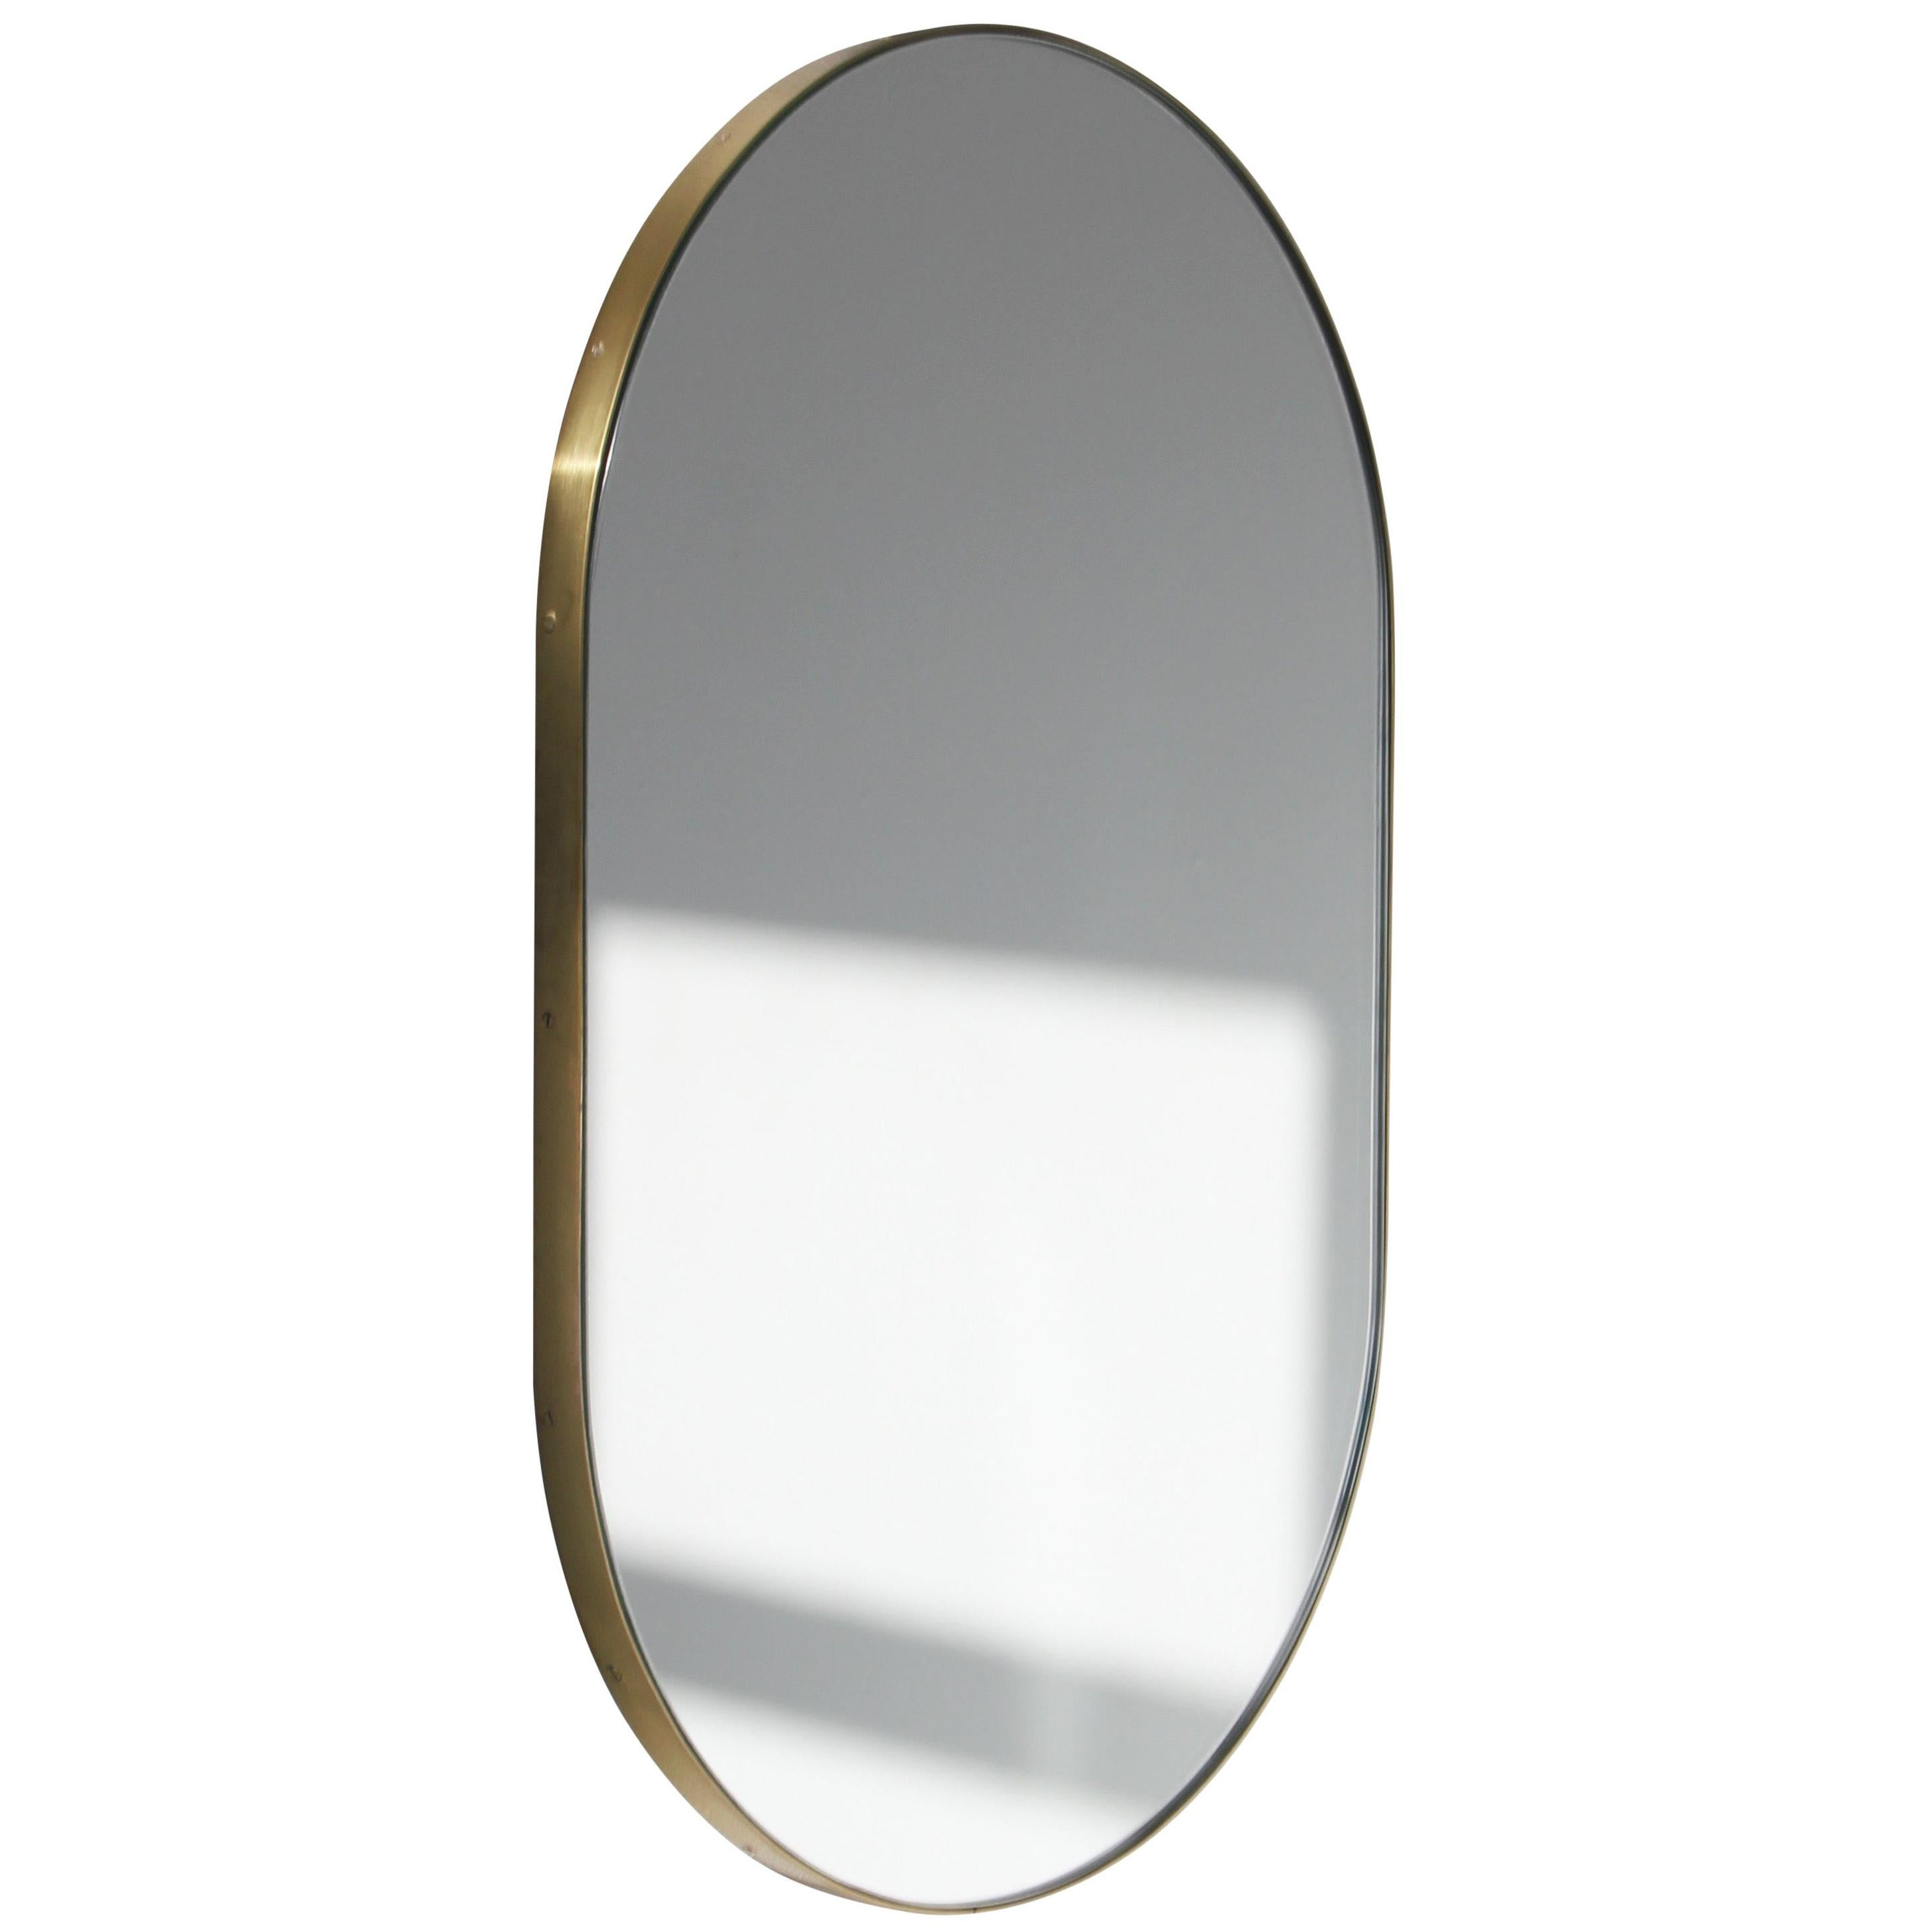 Capsula™ Capsule shaped Wide Elegant Mirror with a Brass Frame